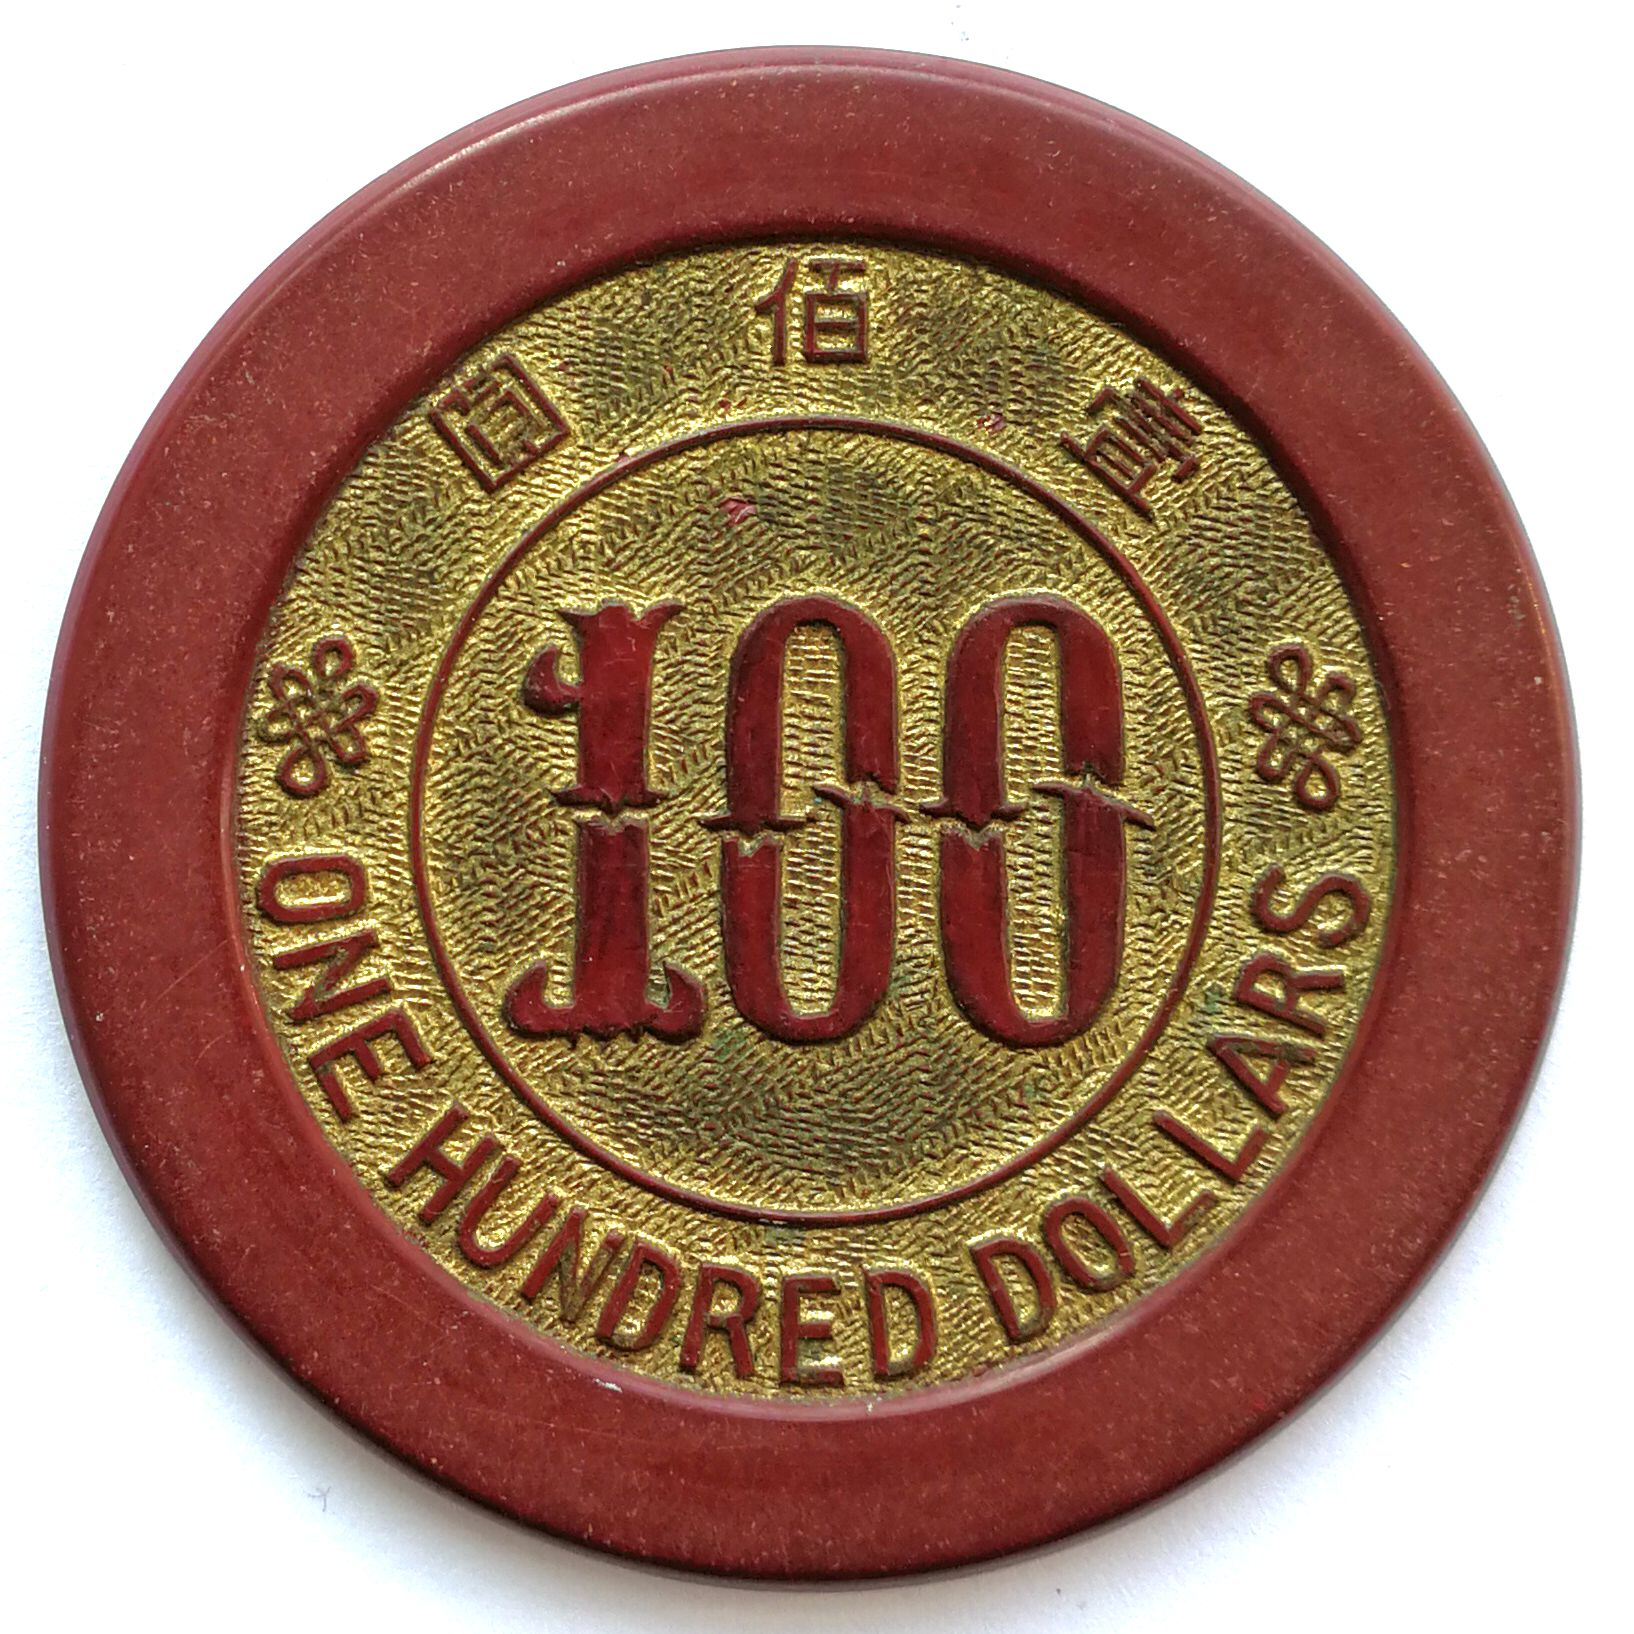 BT628, Shanghai Casino Token 100 Dollars, Large Bilingual, (Bakelite) 1920's